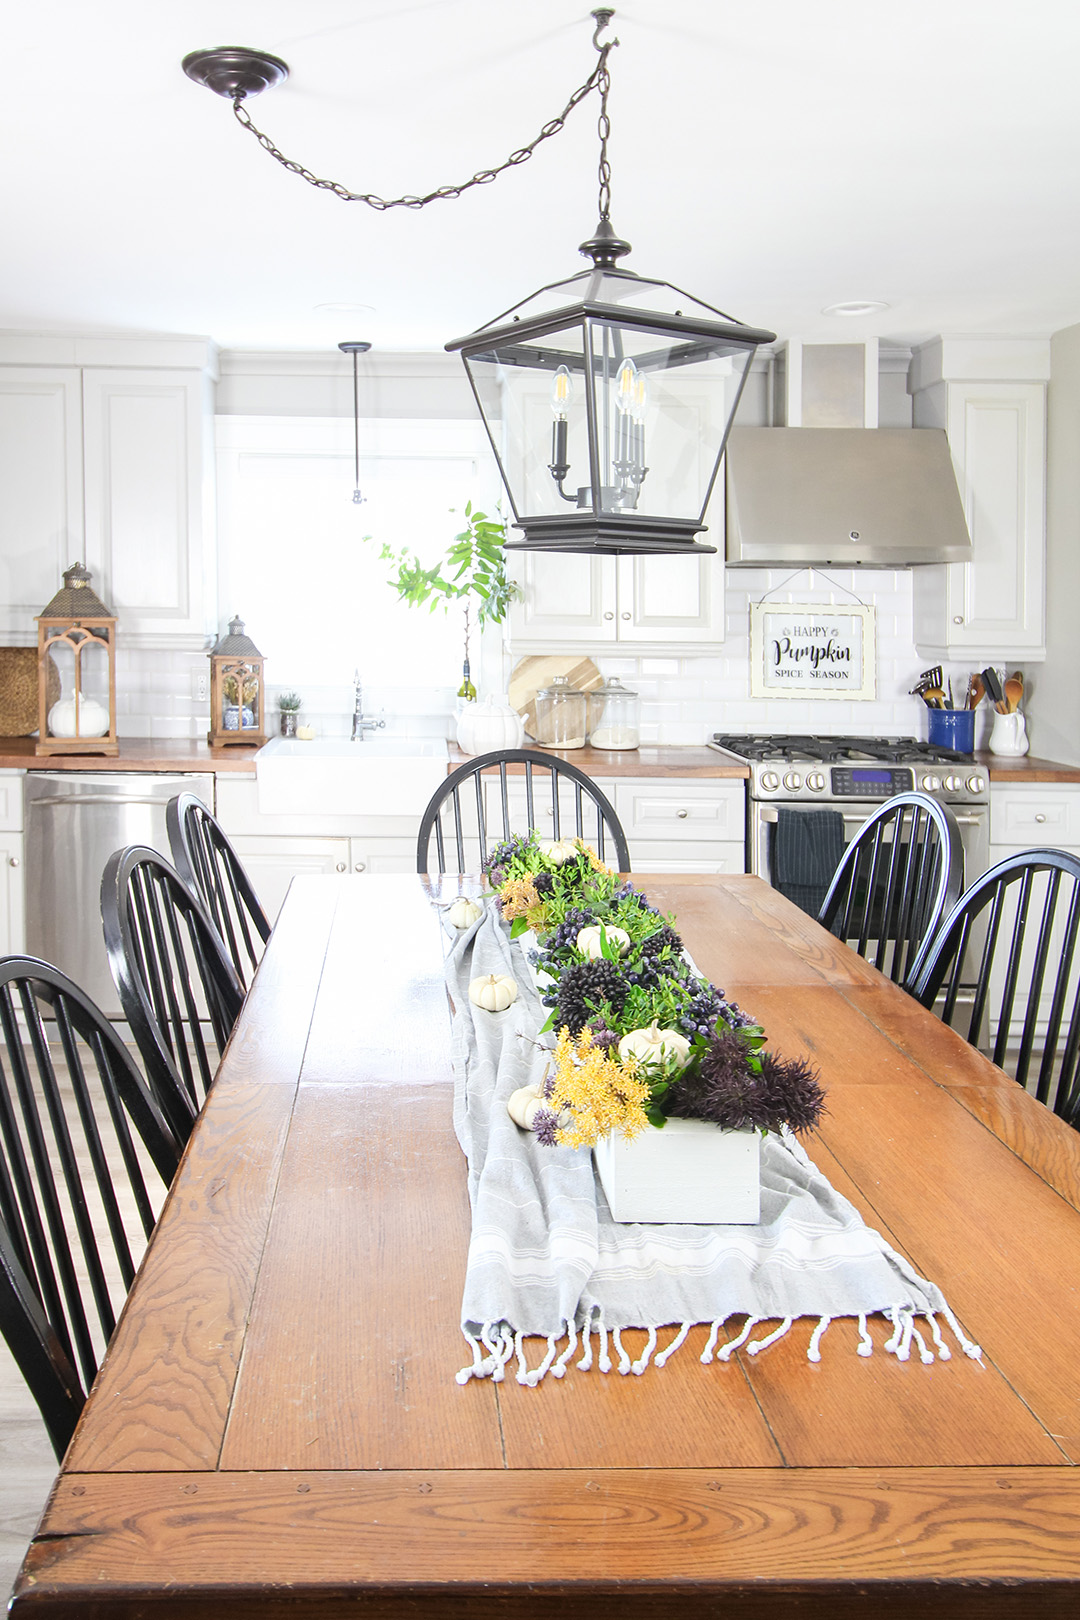 In this post I'll share how I made over my farmhouse style kitchen table and why I painted it! I loved it before, and I love my white kitchen table even more now!